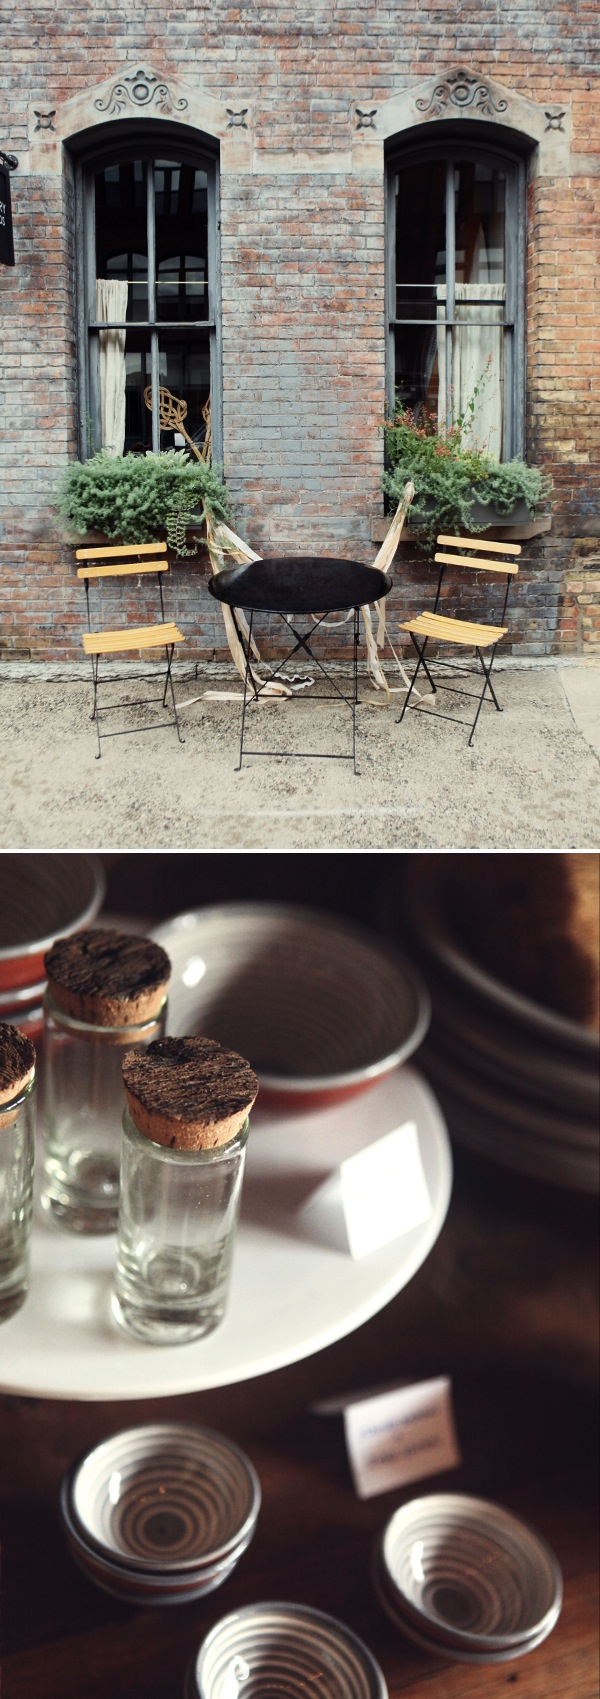 Rustic style at the foundry home goods